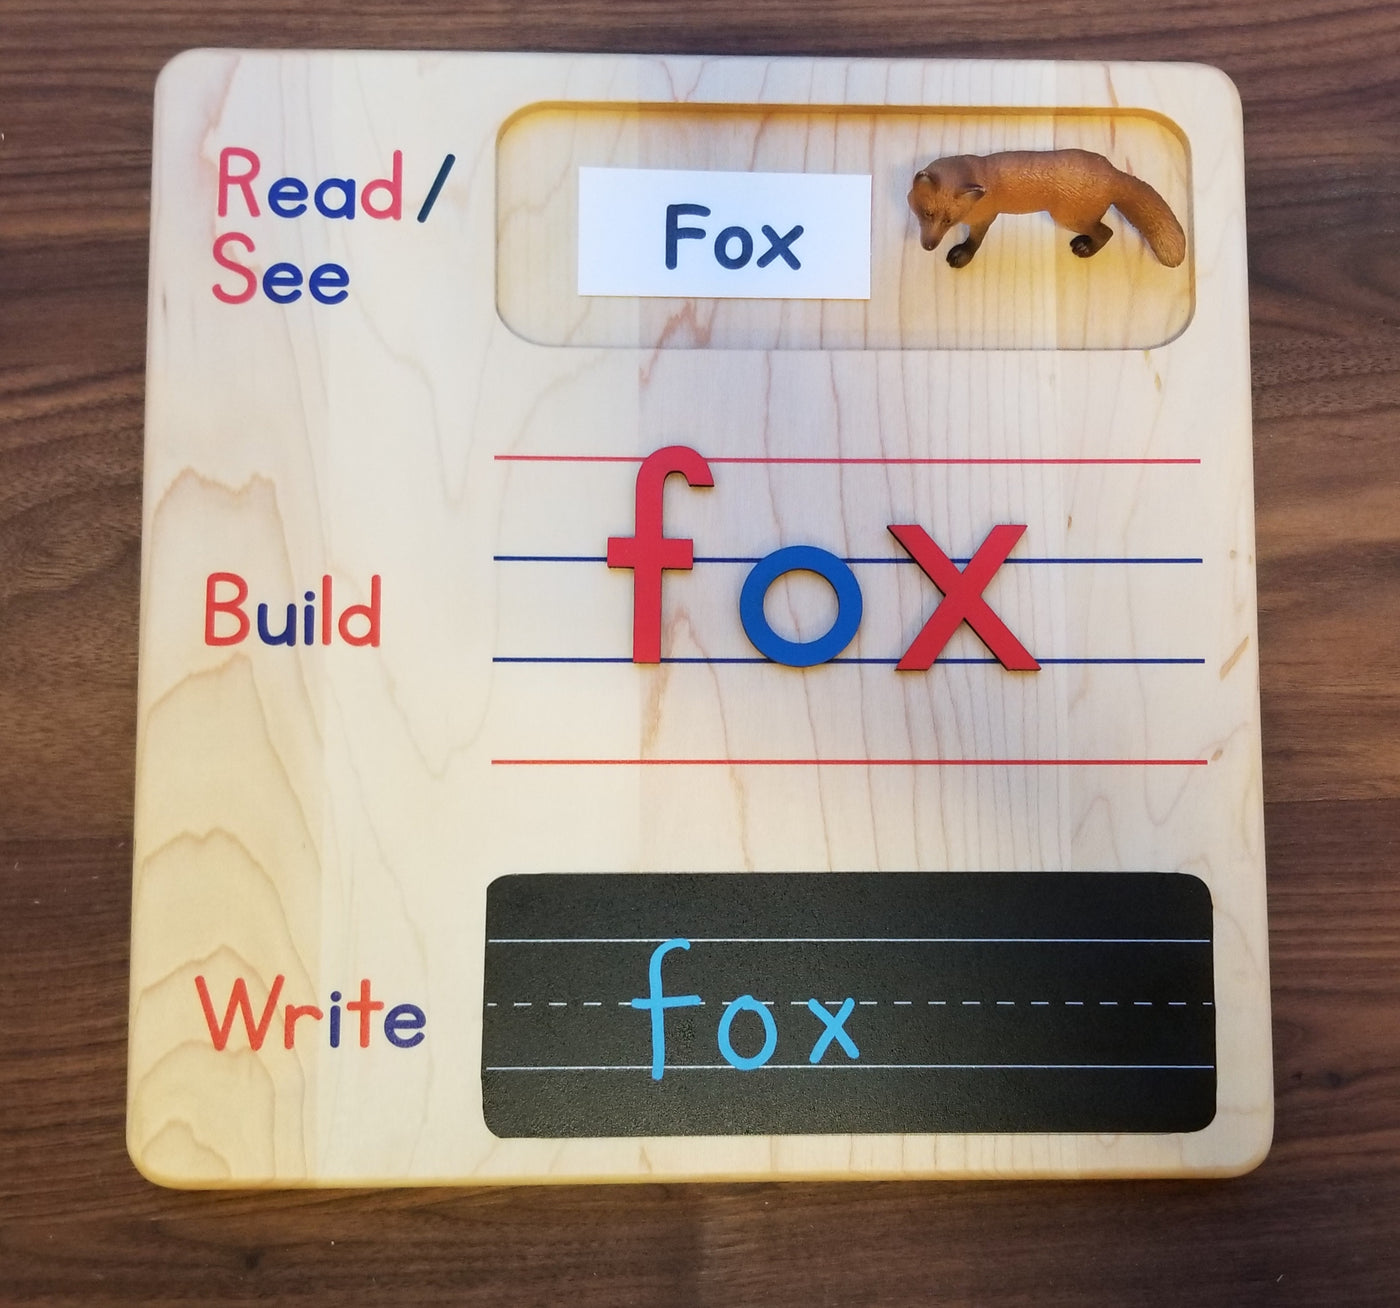 Read build write board - spelling board - writing board - CVC word building mat - language kindergarten